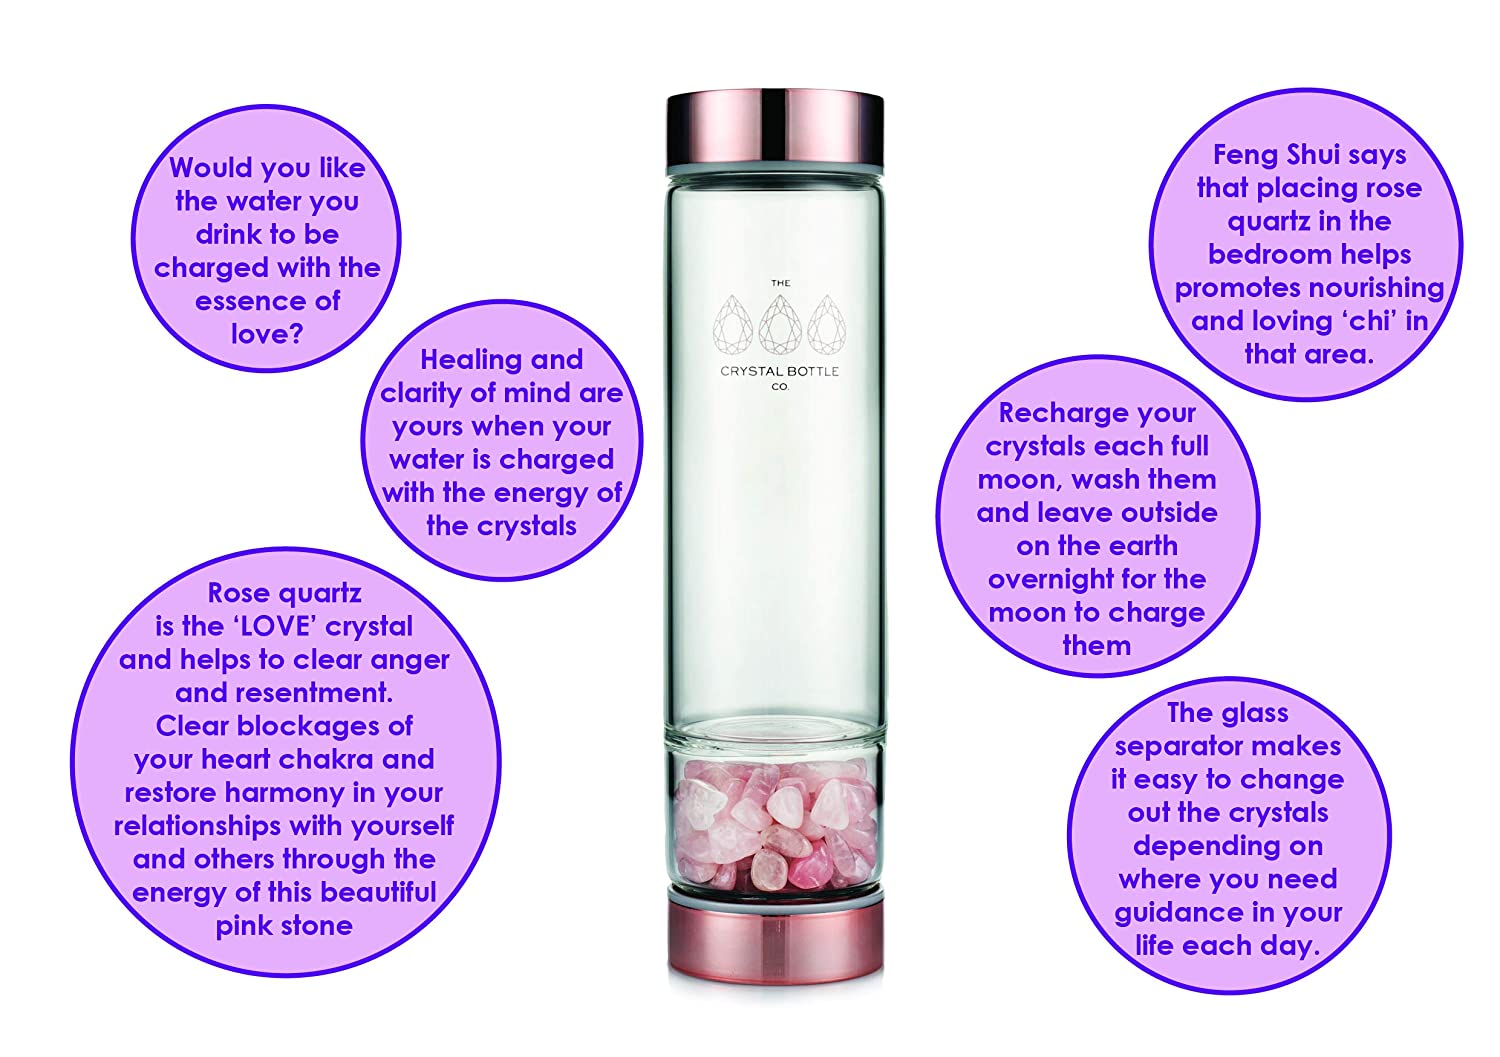 Gemstone Wellness Dispenser with Rose Quartz Crystal Included to Infuse Water for Healing with Rose Gold lids a Great Gift idea for Women and Bridesmaids BPA Free Crystal Elixir Glass Water Bottle